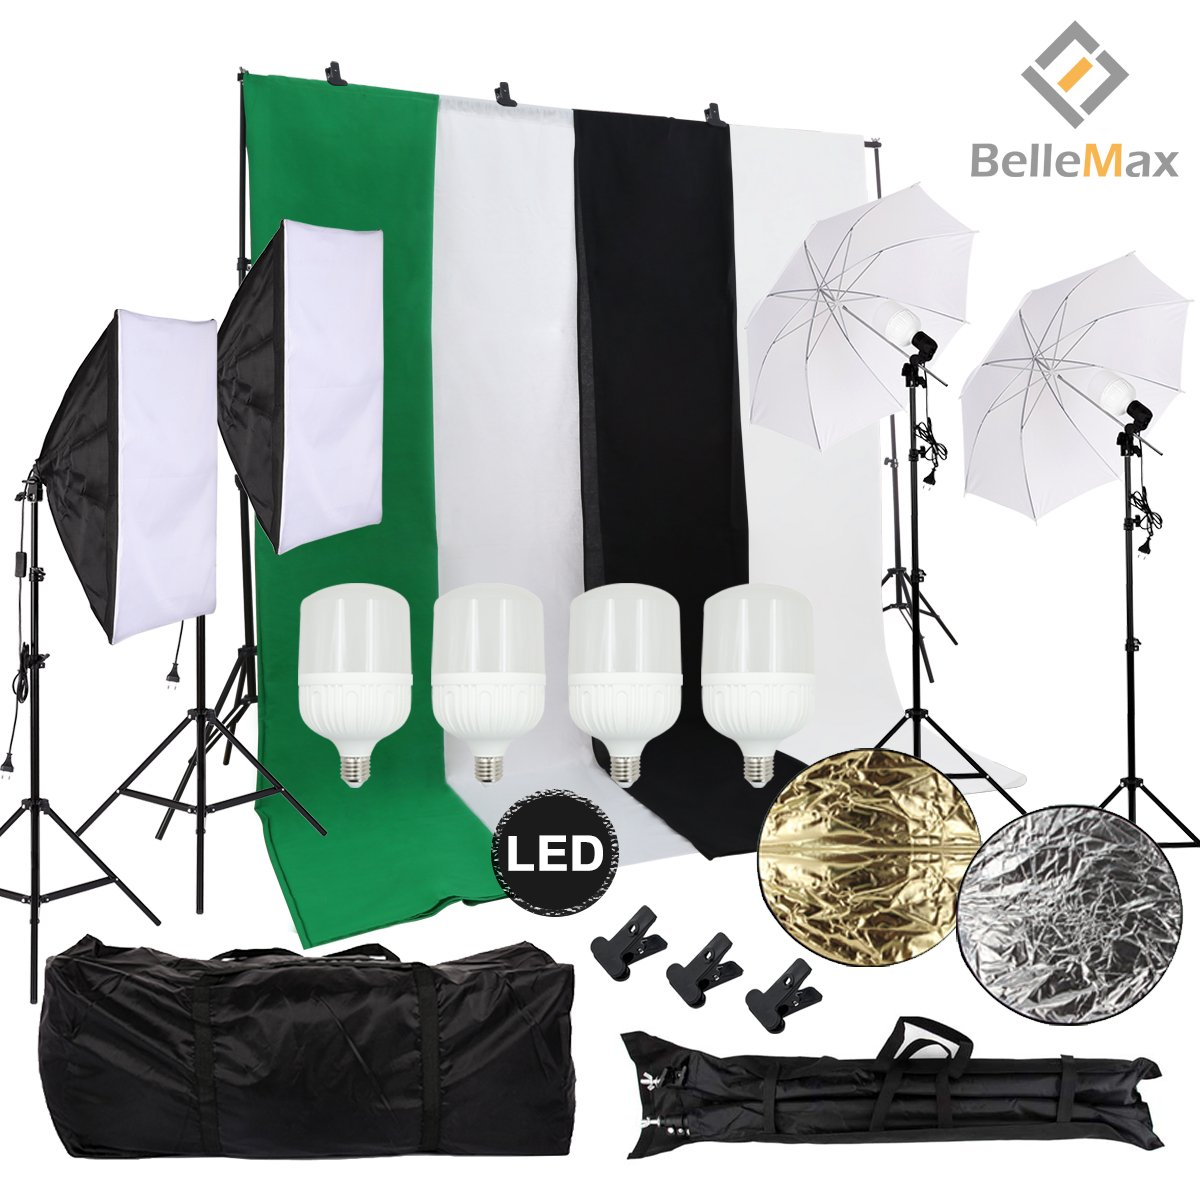 Belle Max Photography Lighting Kit (2 Softbox & 2 Umbrellas) with 4 pcs 28W LED Bulbs, Photo Studio with Adjustable Background Support System with 4 Backdrop(Black/2xWhite/Green), Reflector and bag. by Belle Max